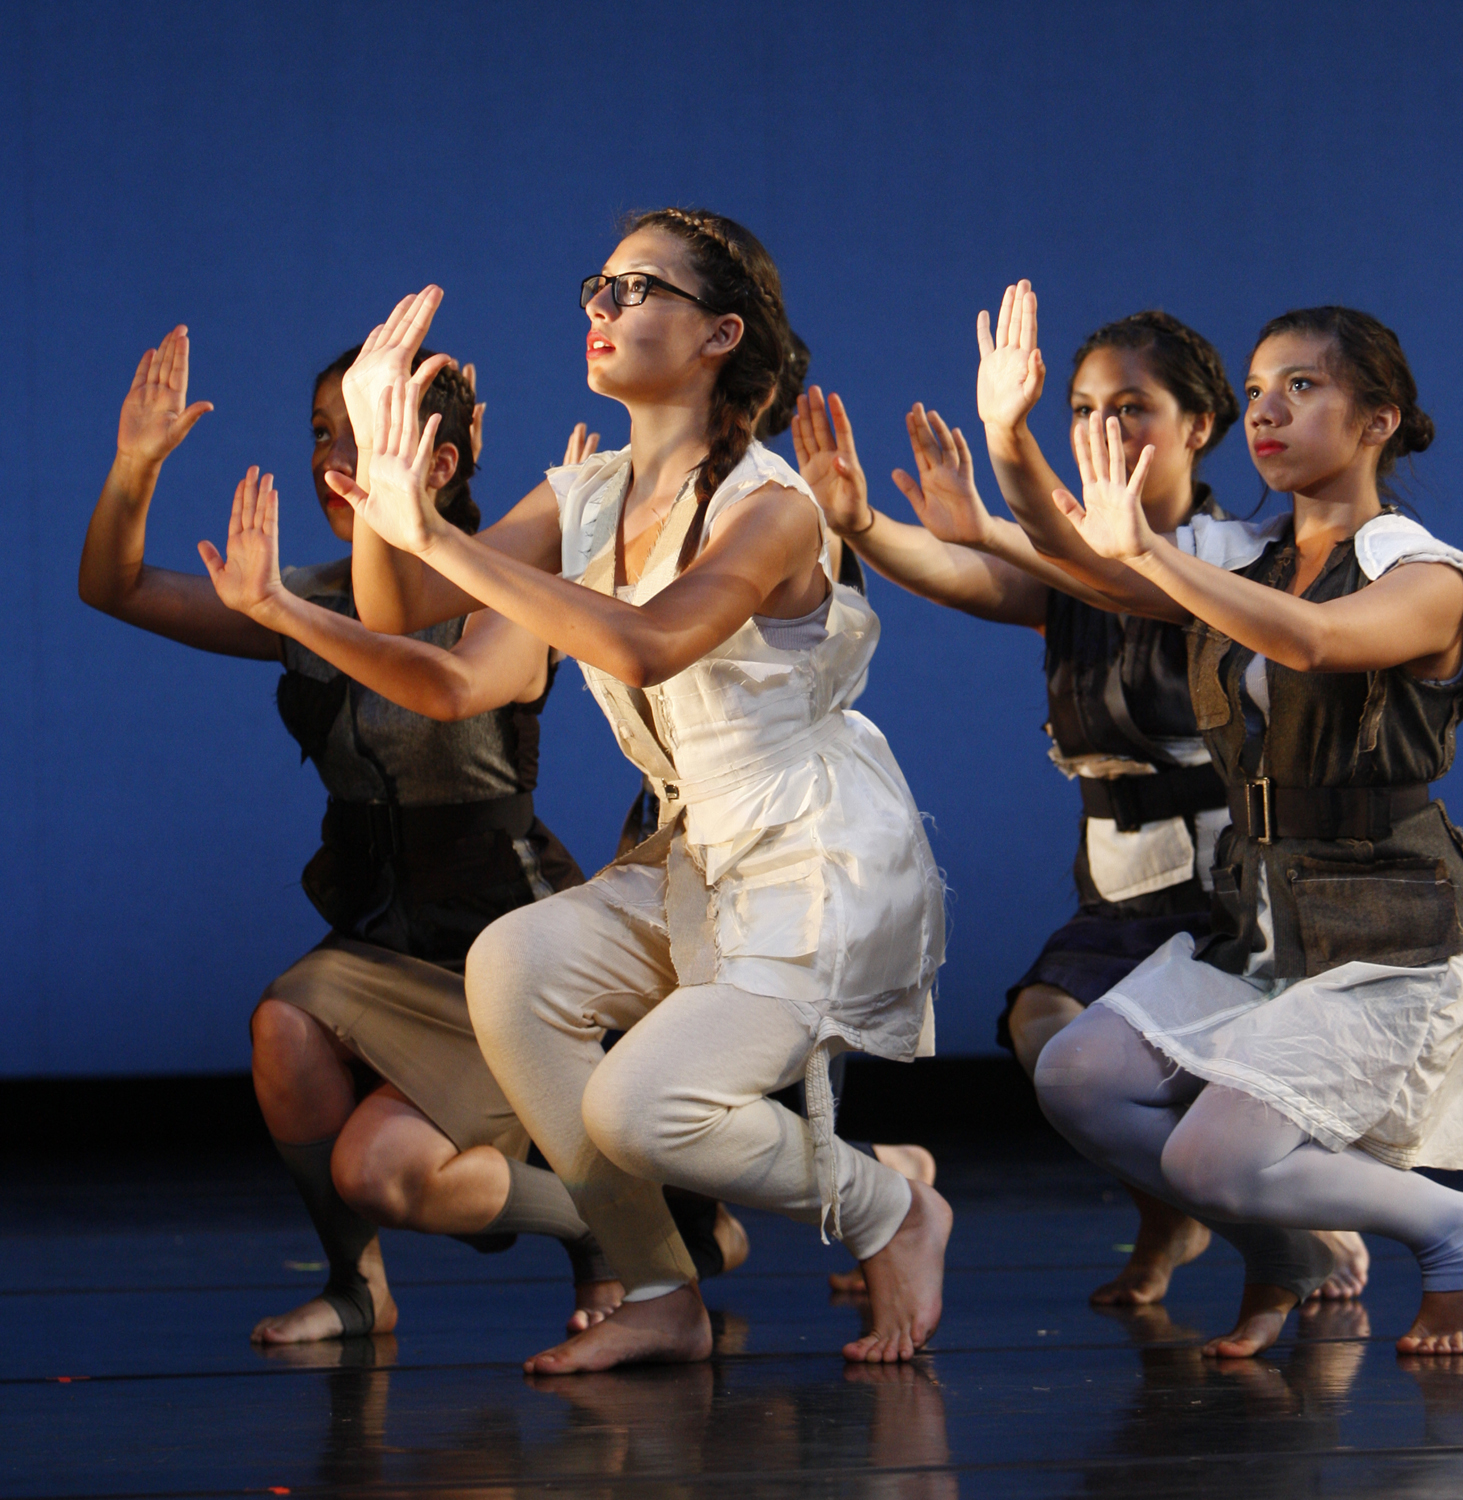 Awesome ... Melanie Ríos Glaser Once Again Celebrates The Transformative Nature Of  Dance And The Uplifting Empowerment Of Nurtured Youth With The Wooden  DressReh